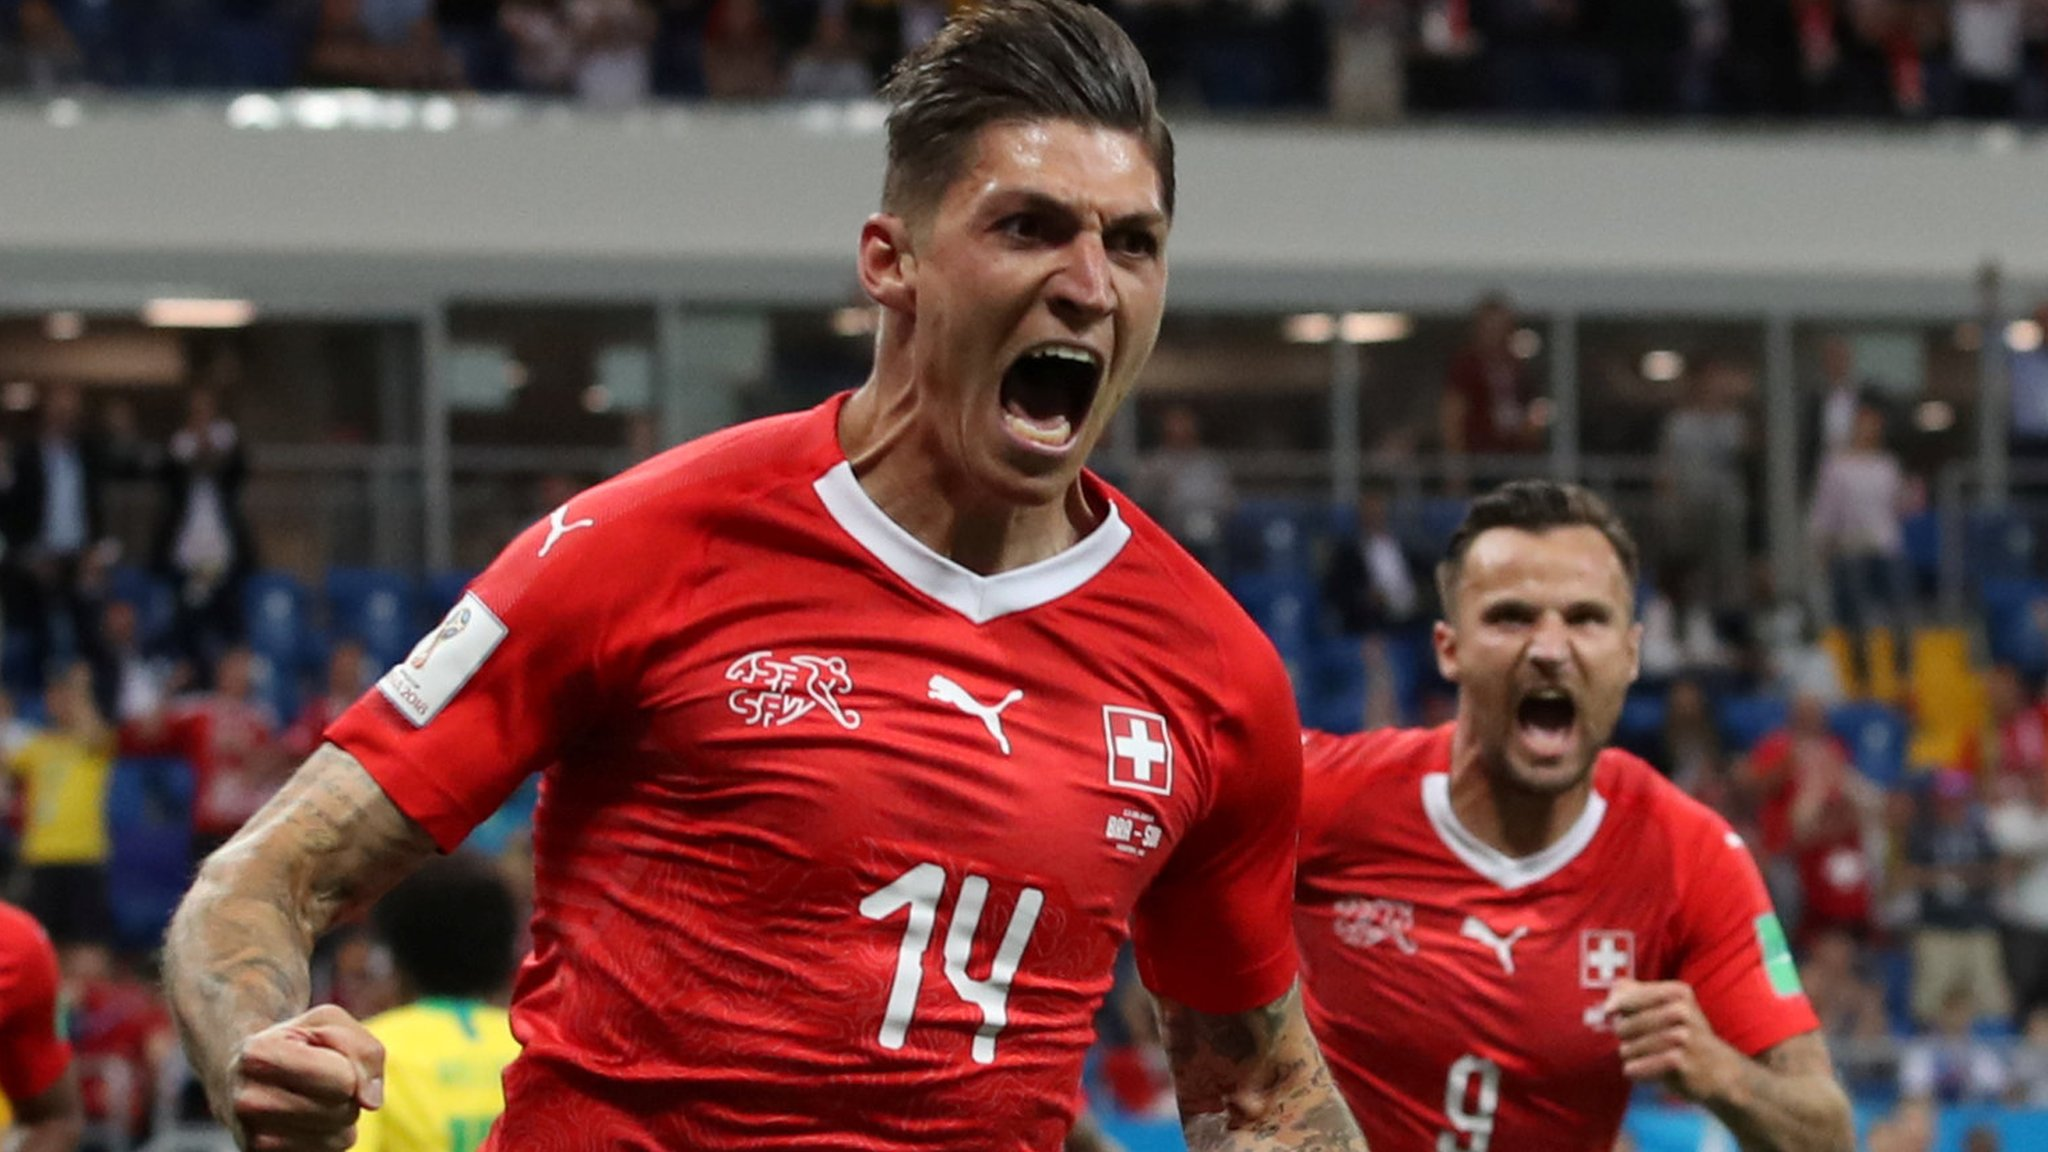 World Cup 2018: Brazil held to 1-1 draw by Switzerland in Group E opener